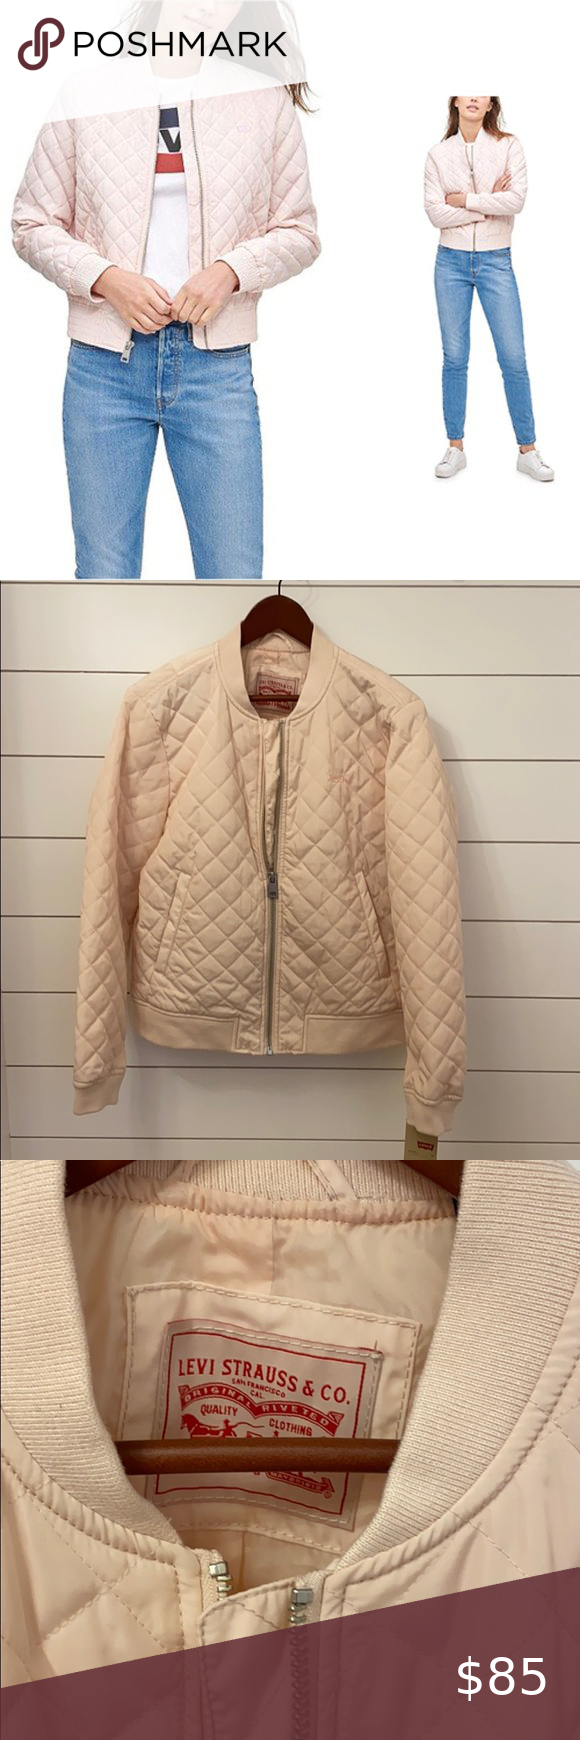 Nwt Levi S Women S Diamond Quilted Bomber Jacket Quilted Bomber Jacket Quilted Bomber Bomber Jacket [ 1740 x 580 Pixel ]